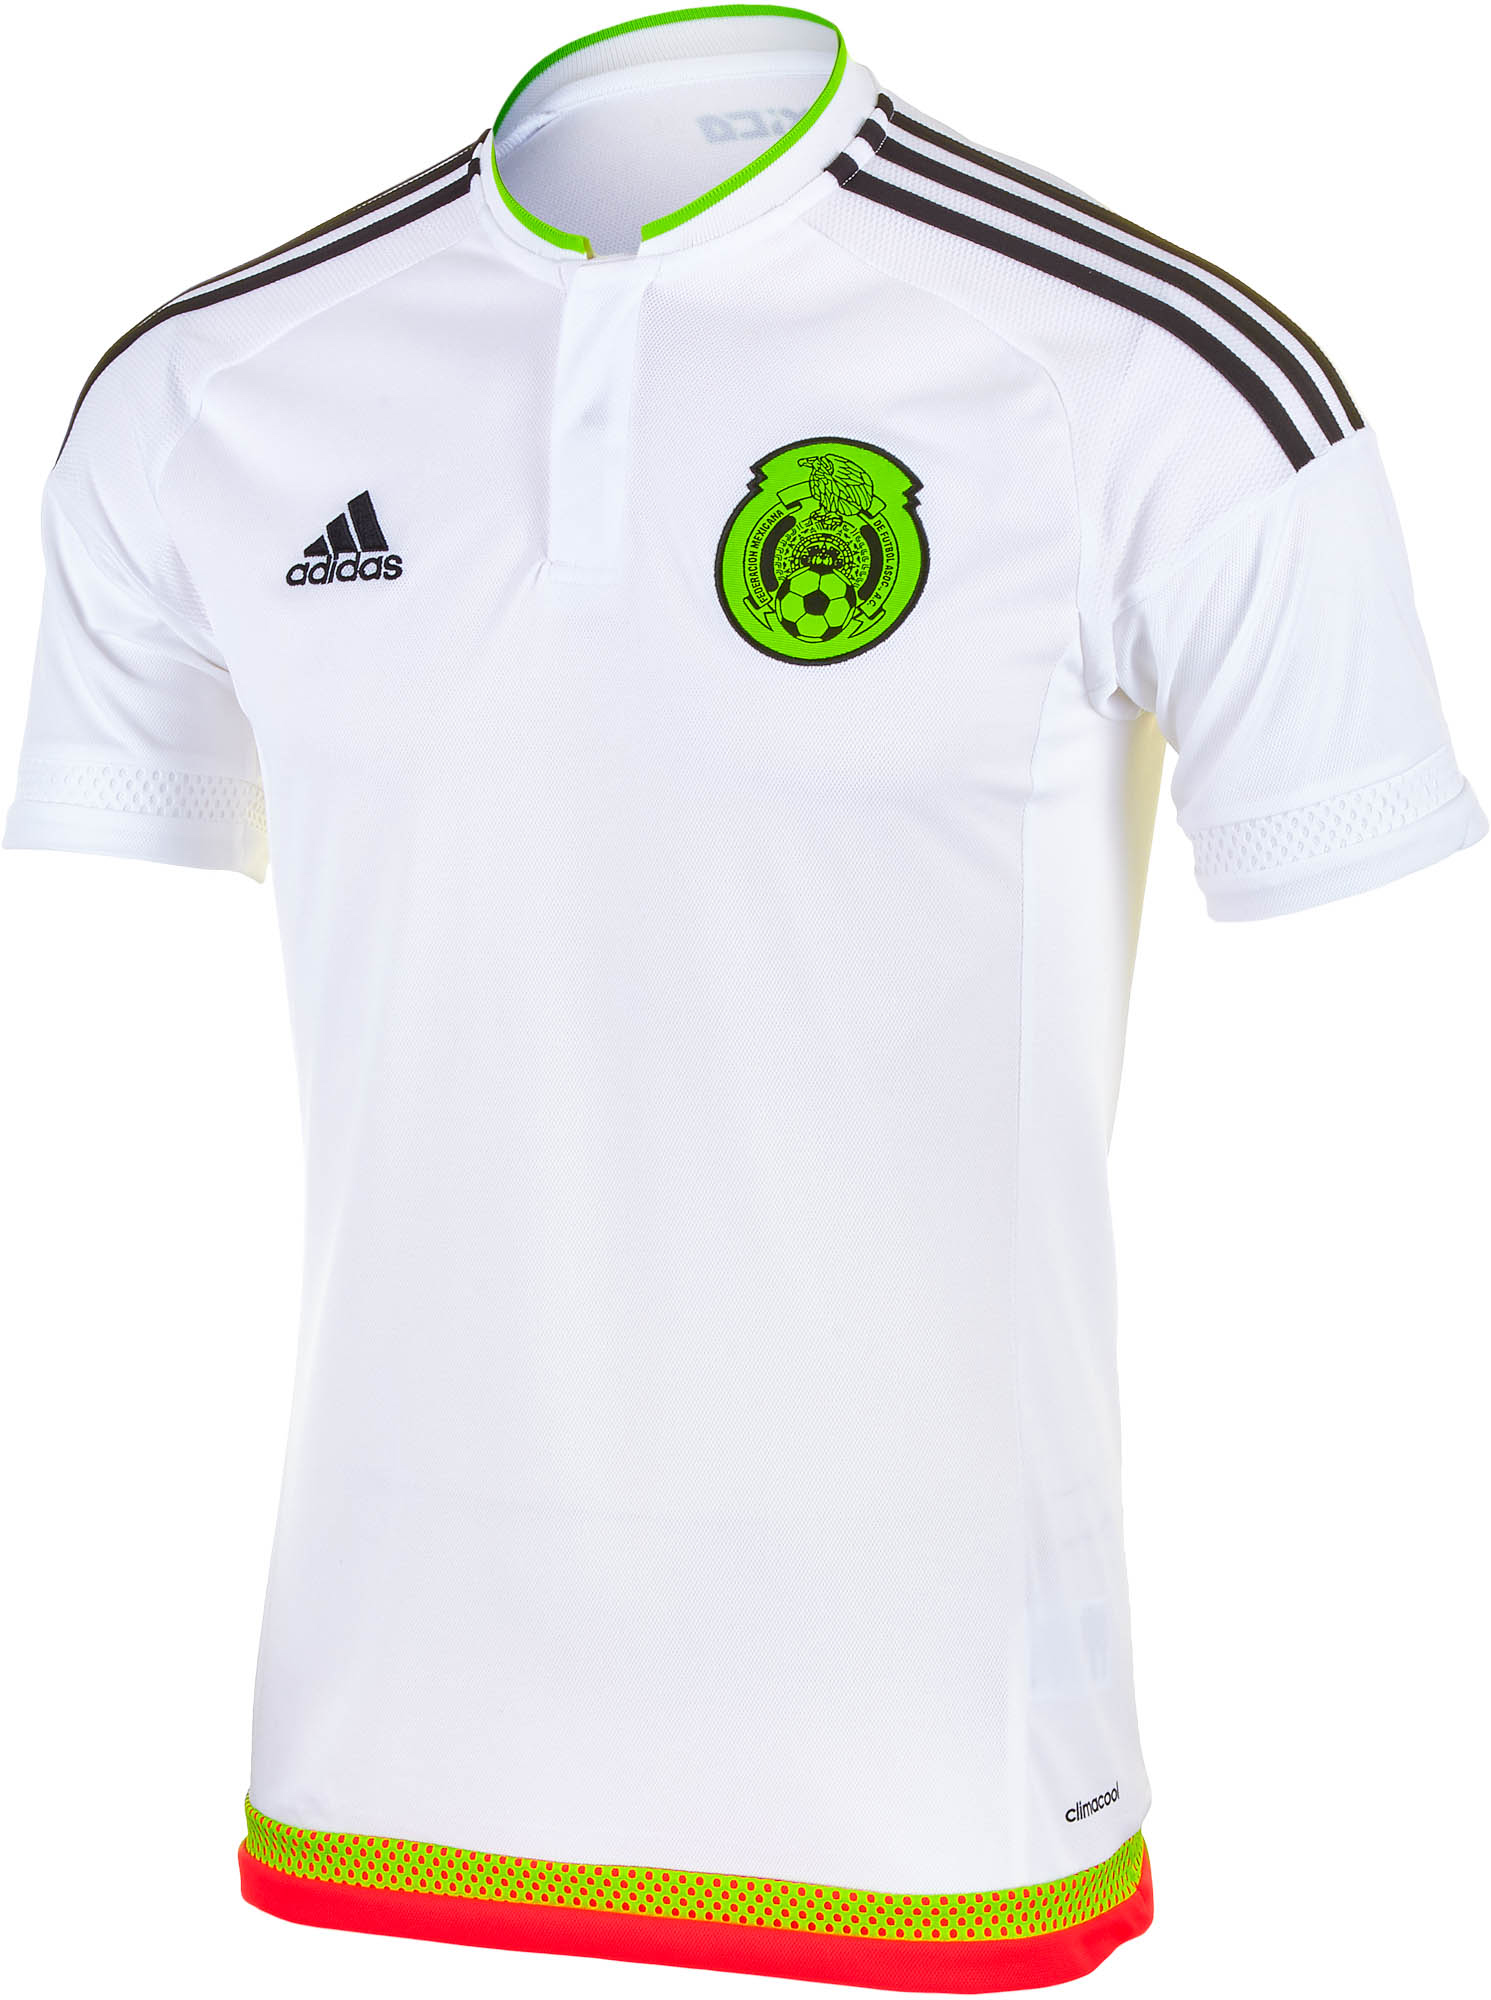 e8fbdd936ed adidas Mexico Jersey - White 2015 Kids Mexico Away Jerseys